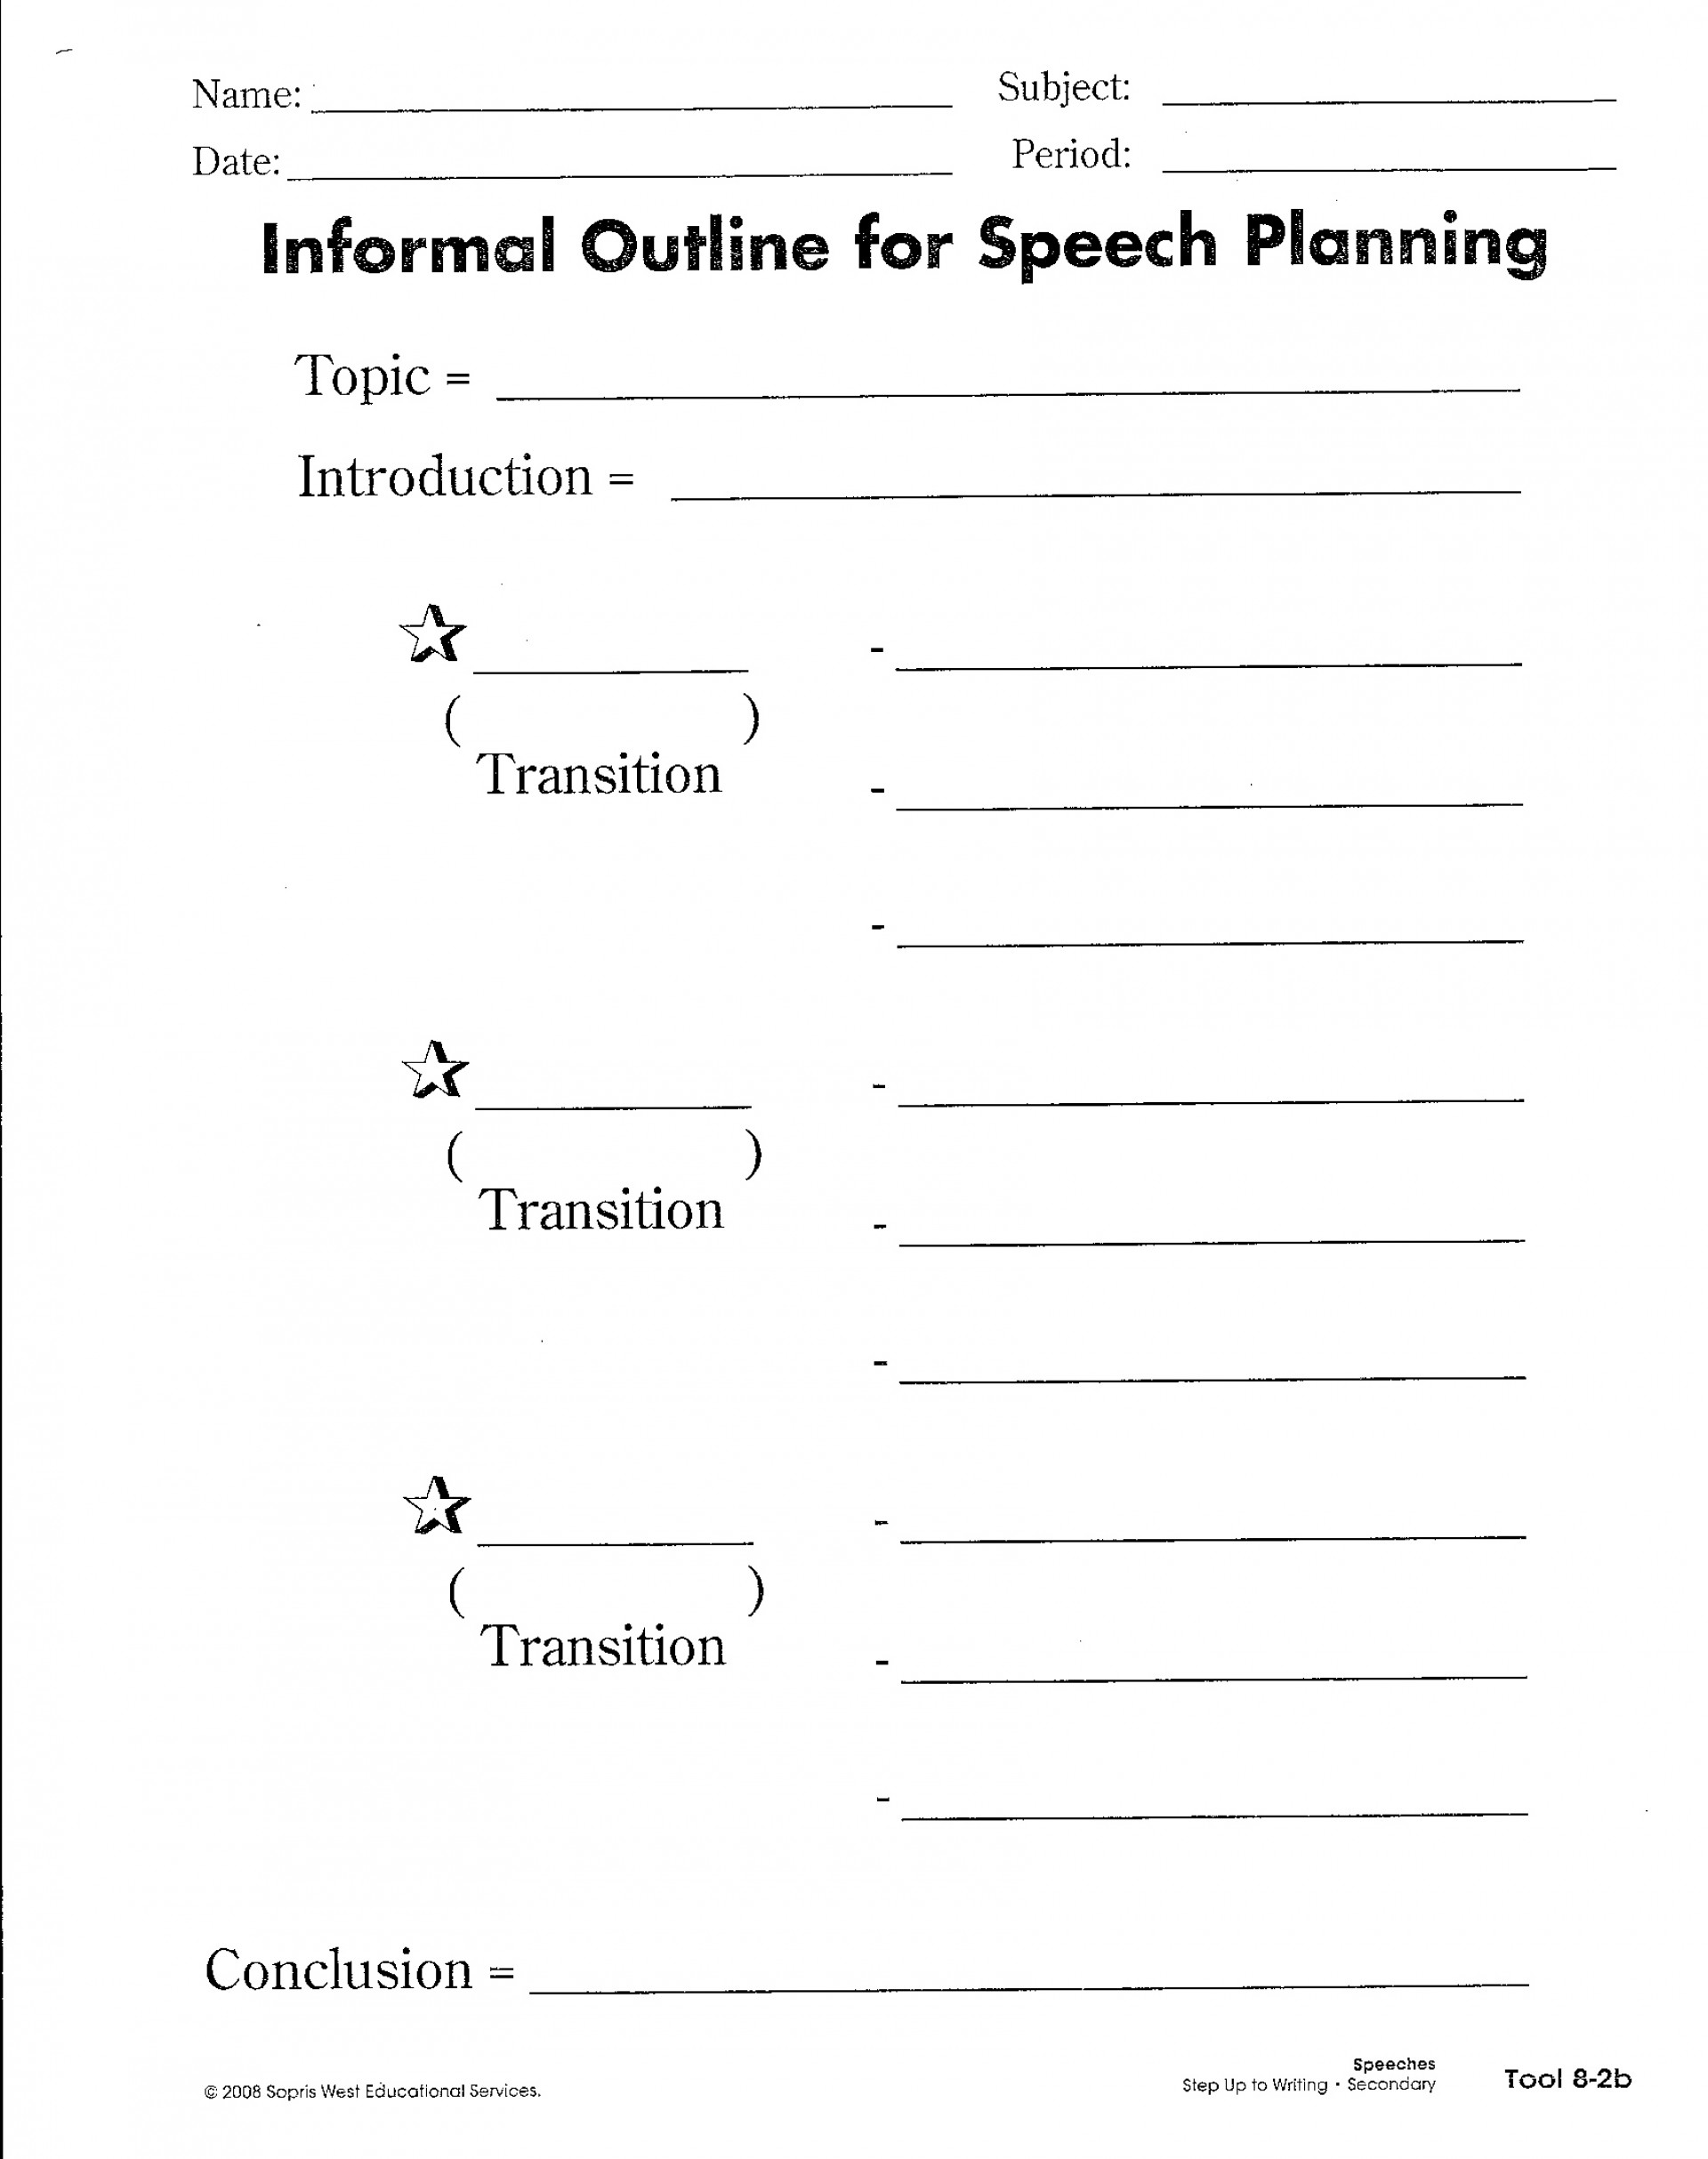 023 Basic Research Paper Outline Suw Planning Your Speech With An Informal Imposing Easy Template 1920